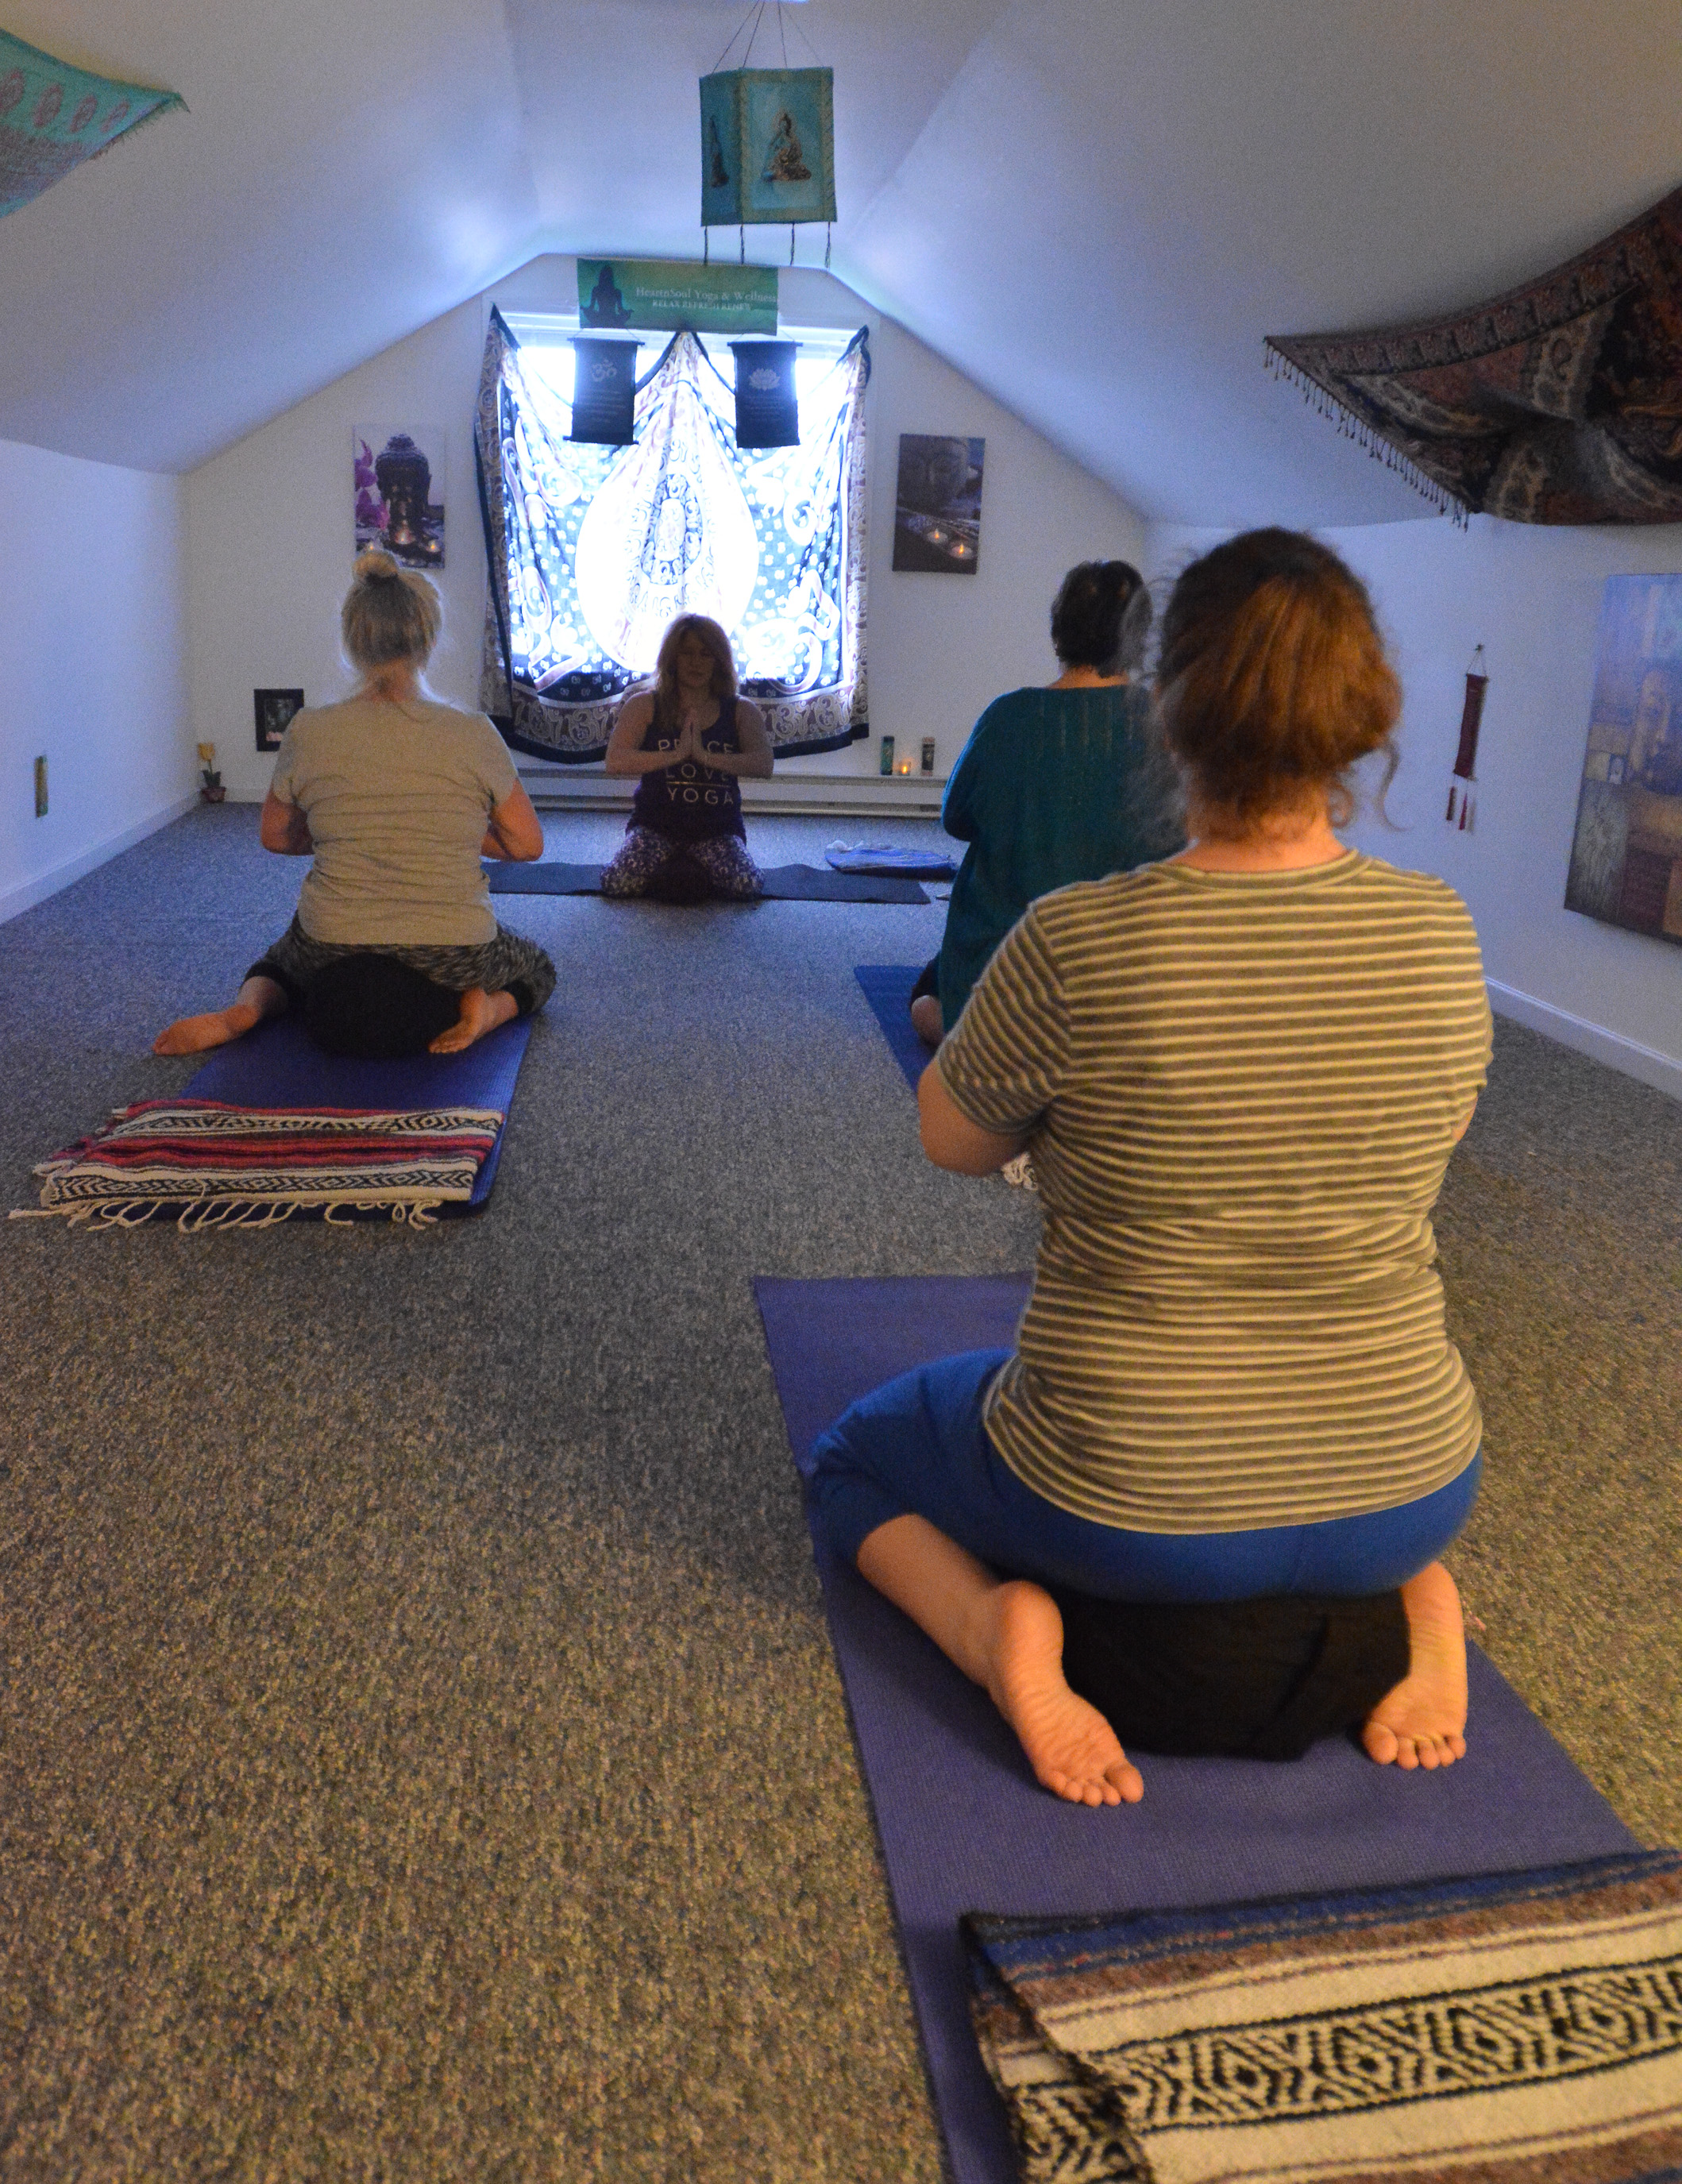 Bonni-Lynne Sandler, center, leads her yoga class Tuesday at HeartnSoul Yoga & Wellness in Hadley.